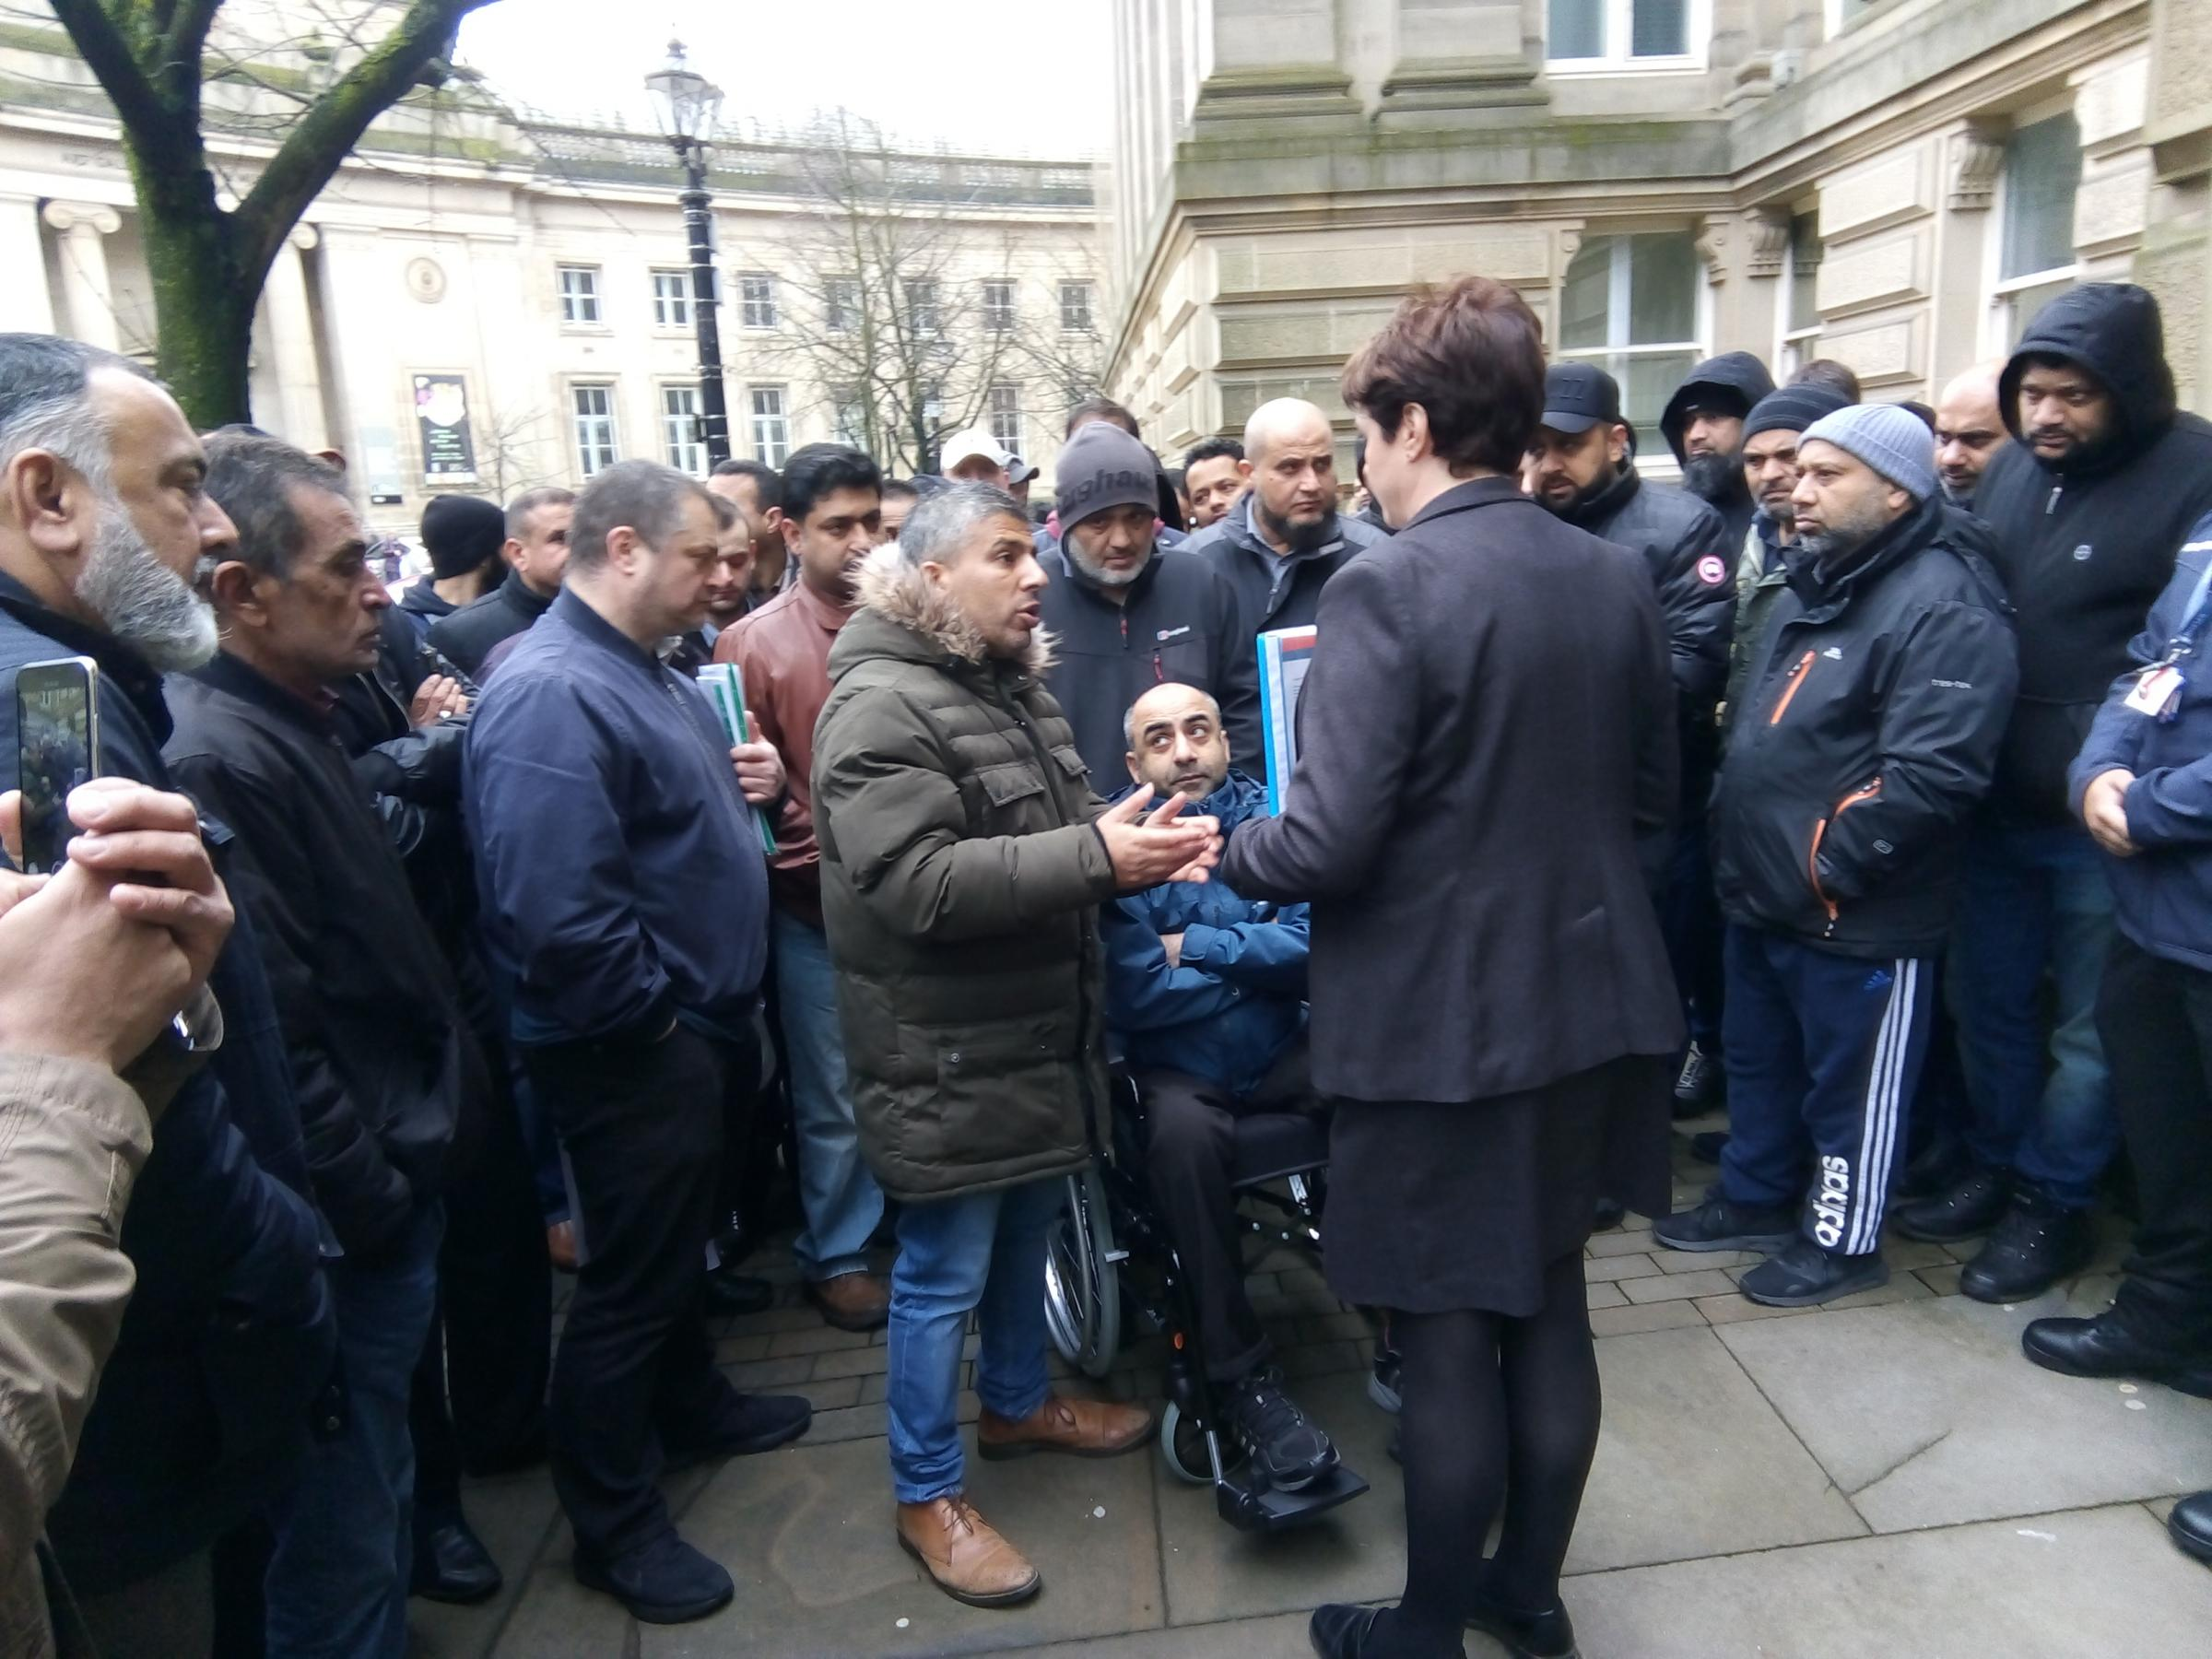 Asif Vali led the strike outside Bolton Town Hall